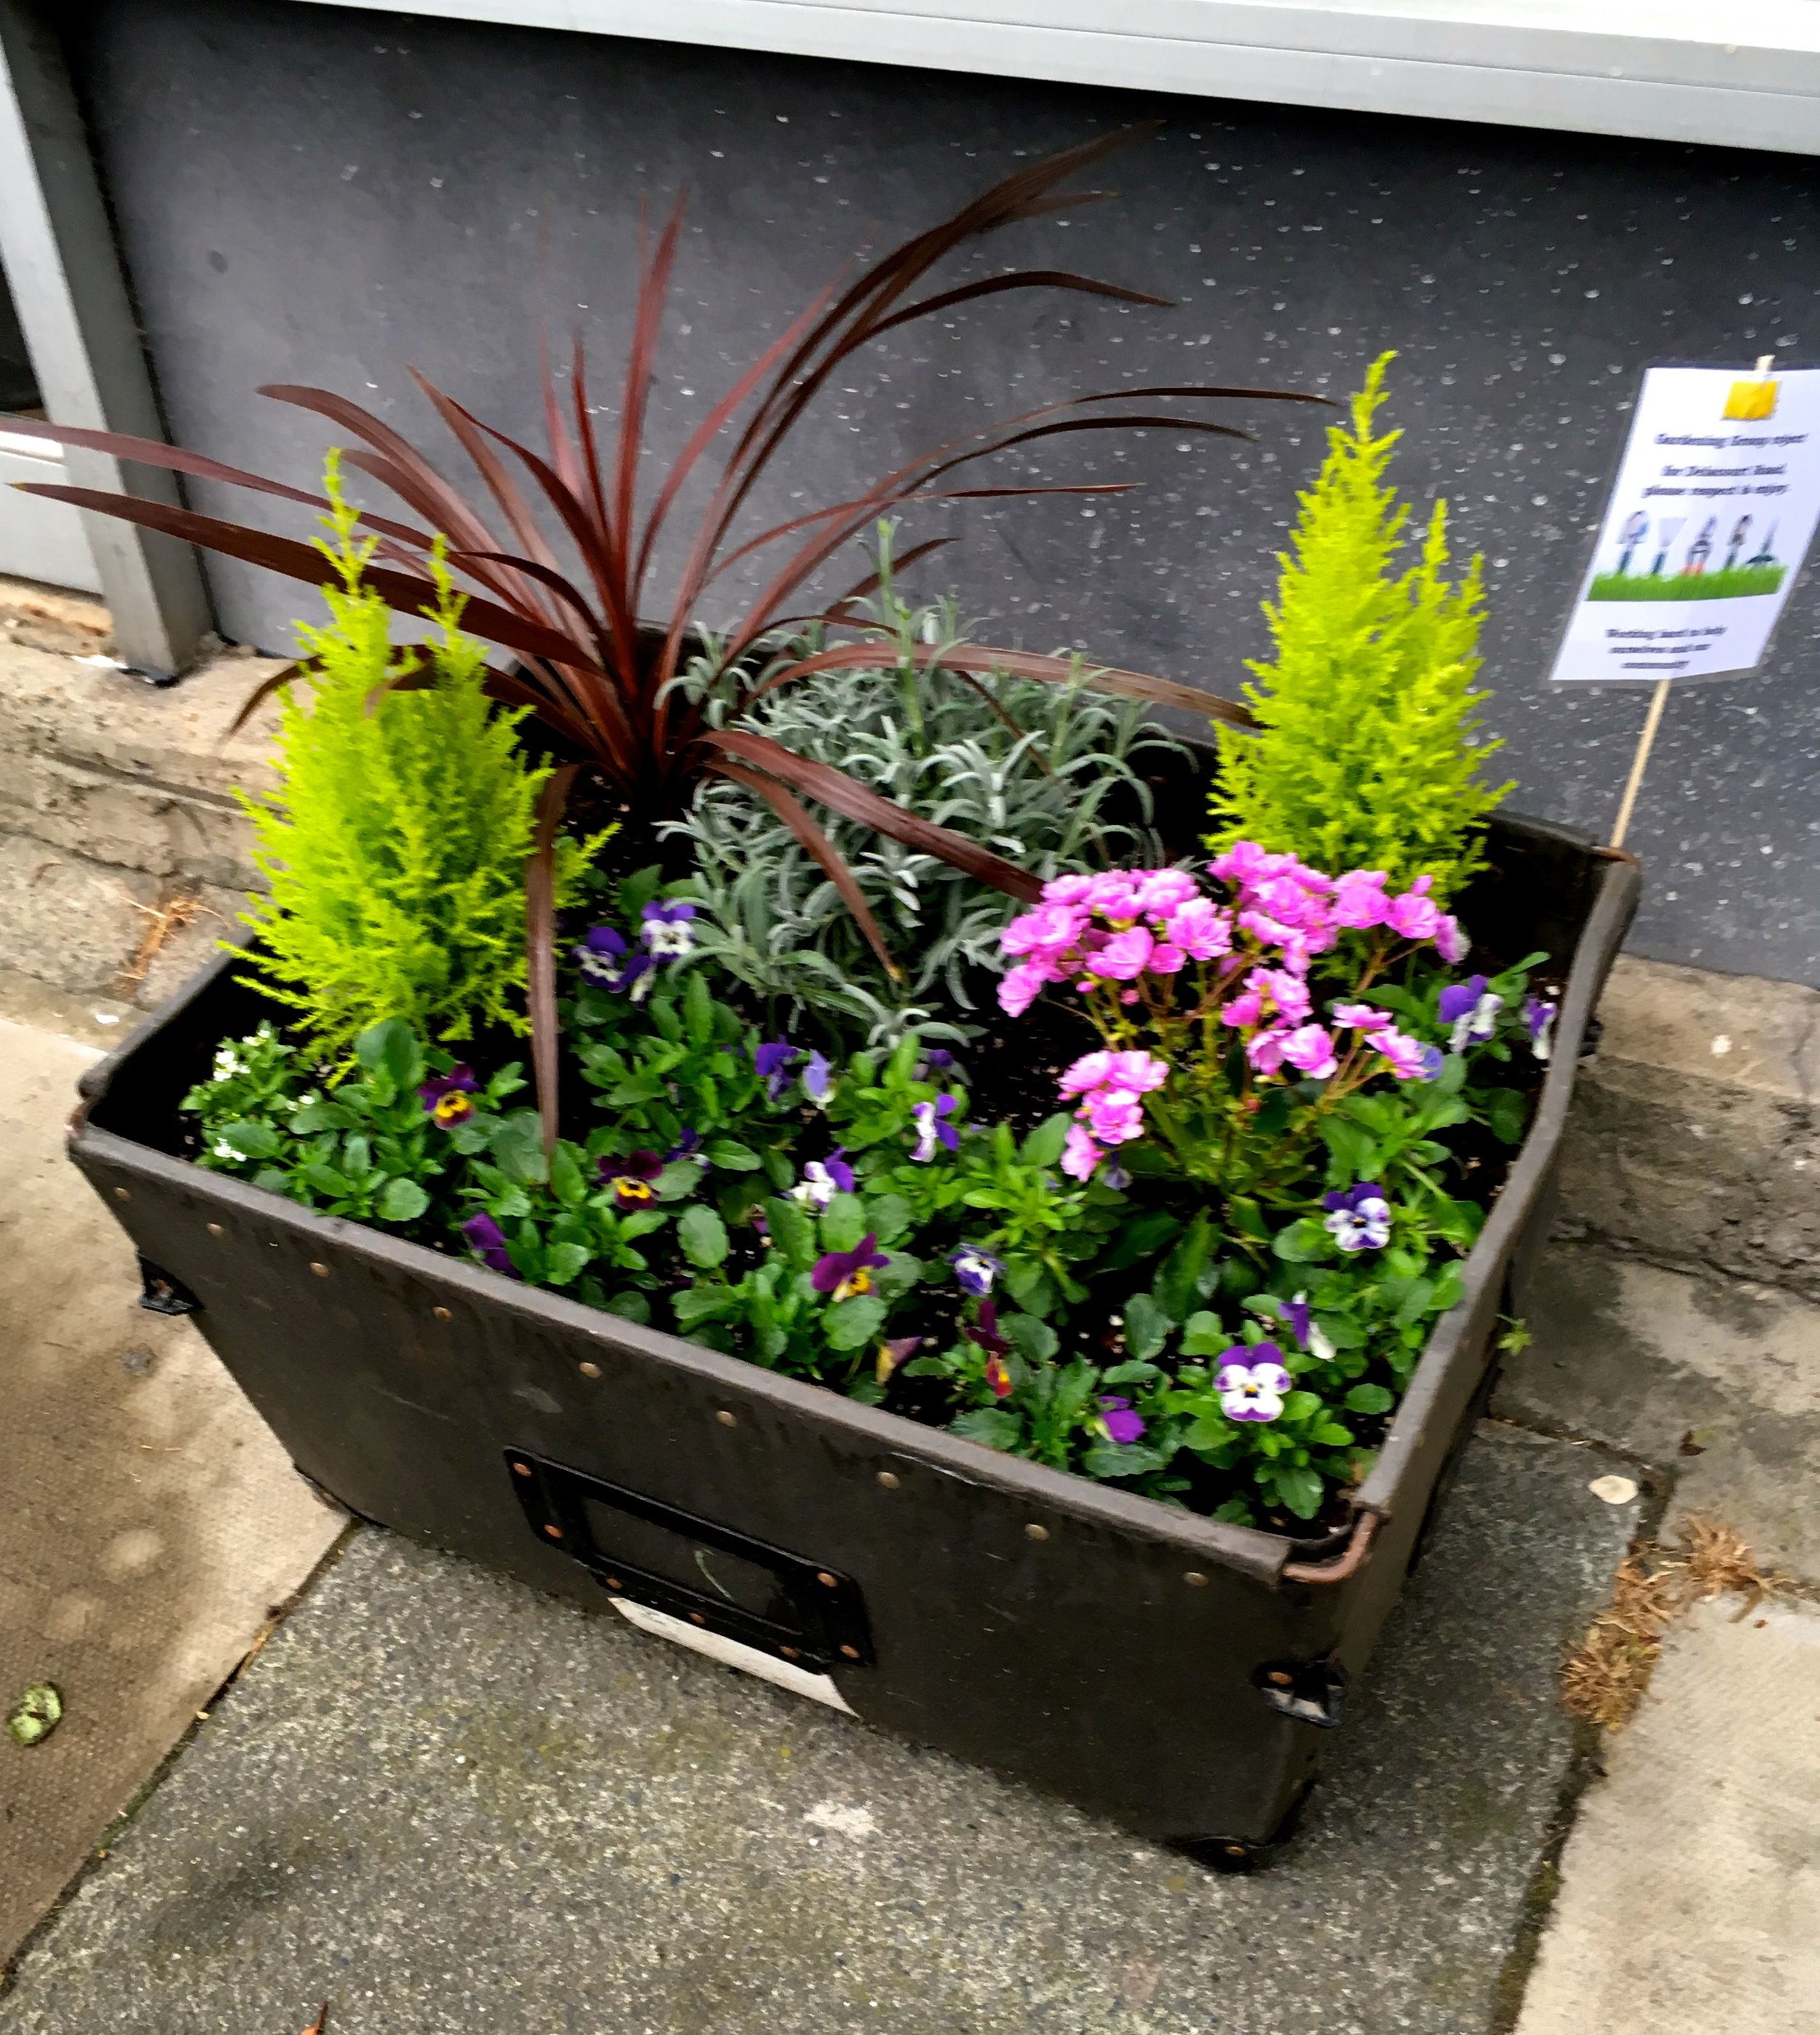 A STORAGE BOX OUTSIDE THE TAXI OFFICE